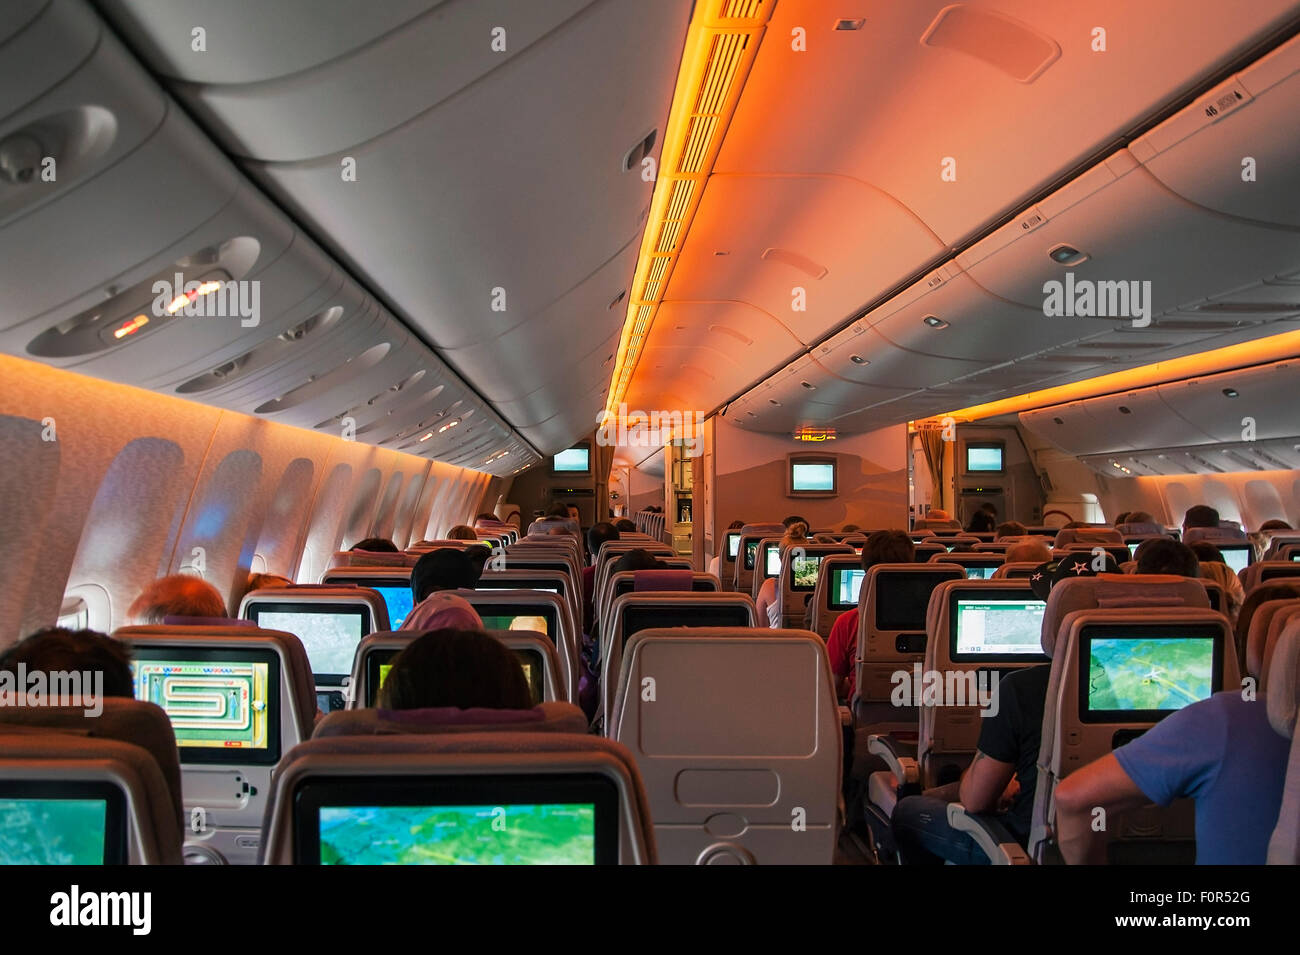 Boeing 777-300 passenger compartment economy class during flight Dubai-Frankfurt - Stock Image